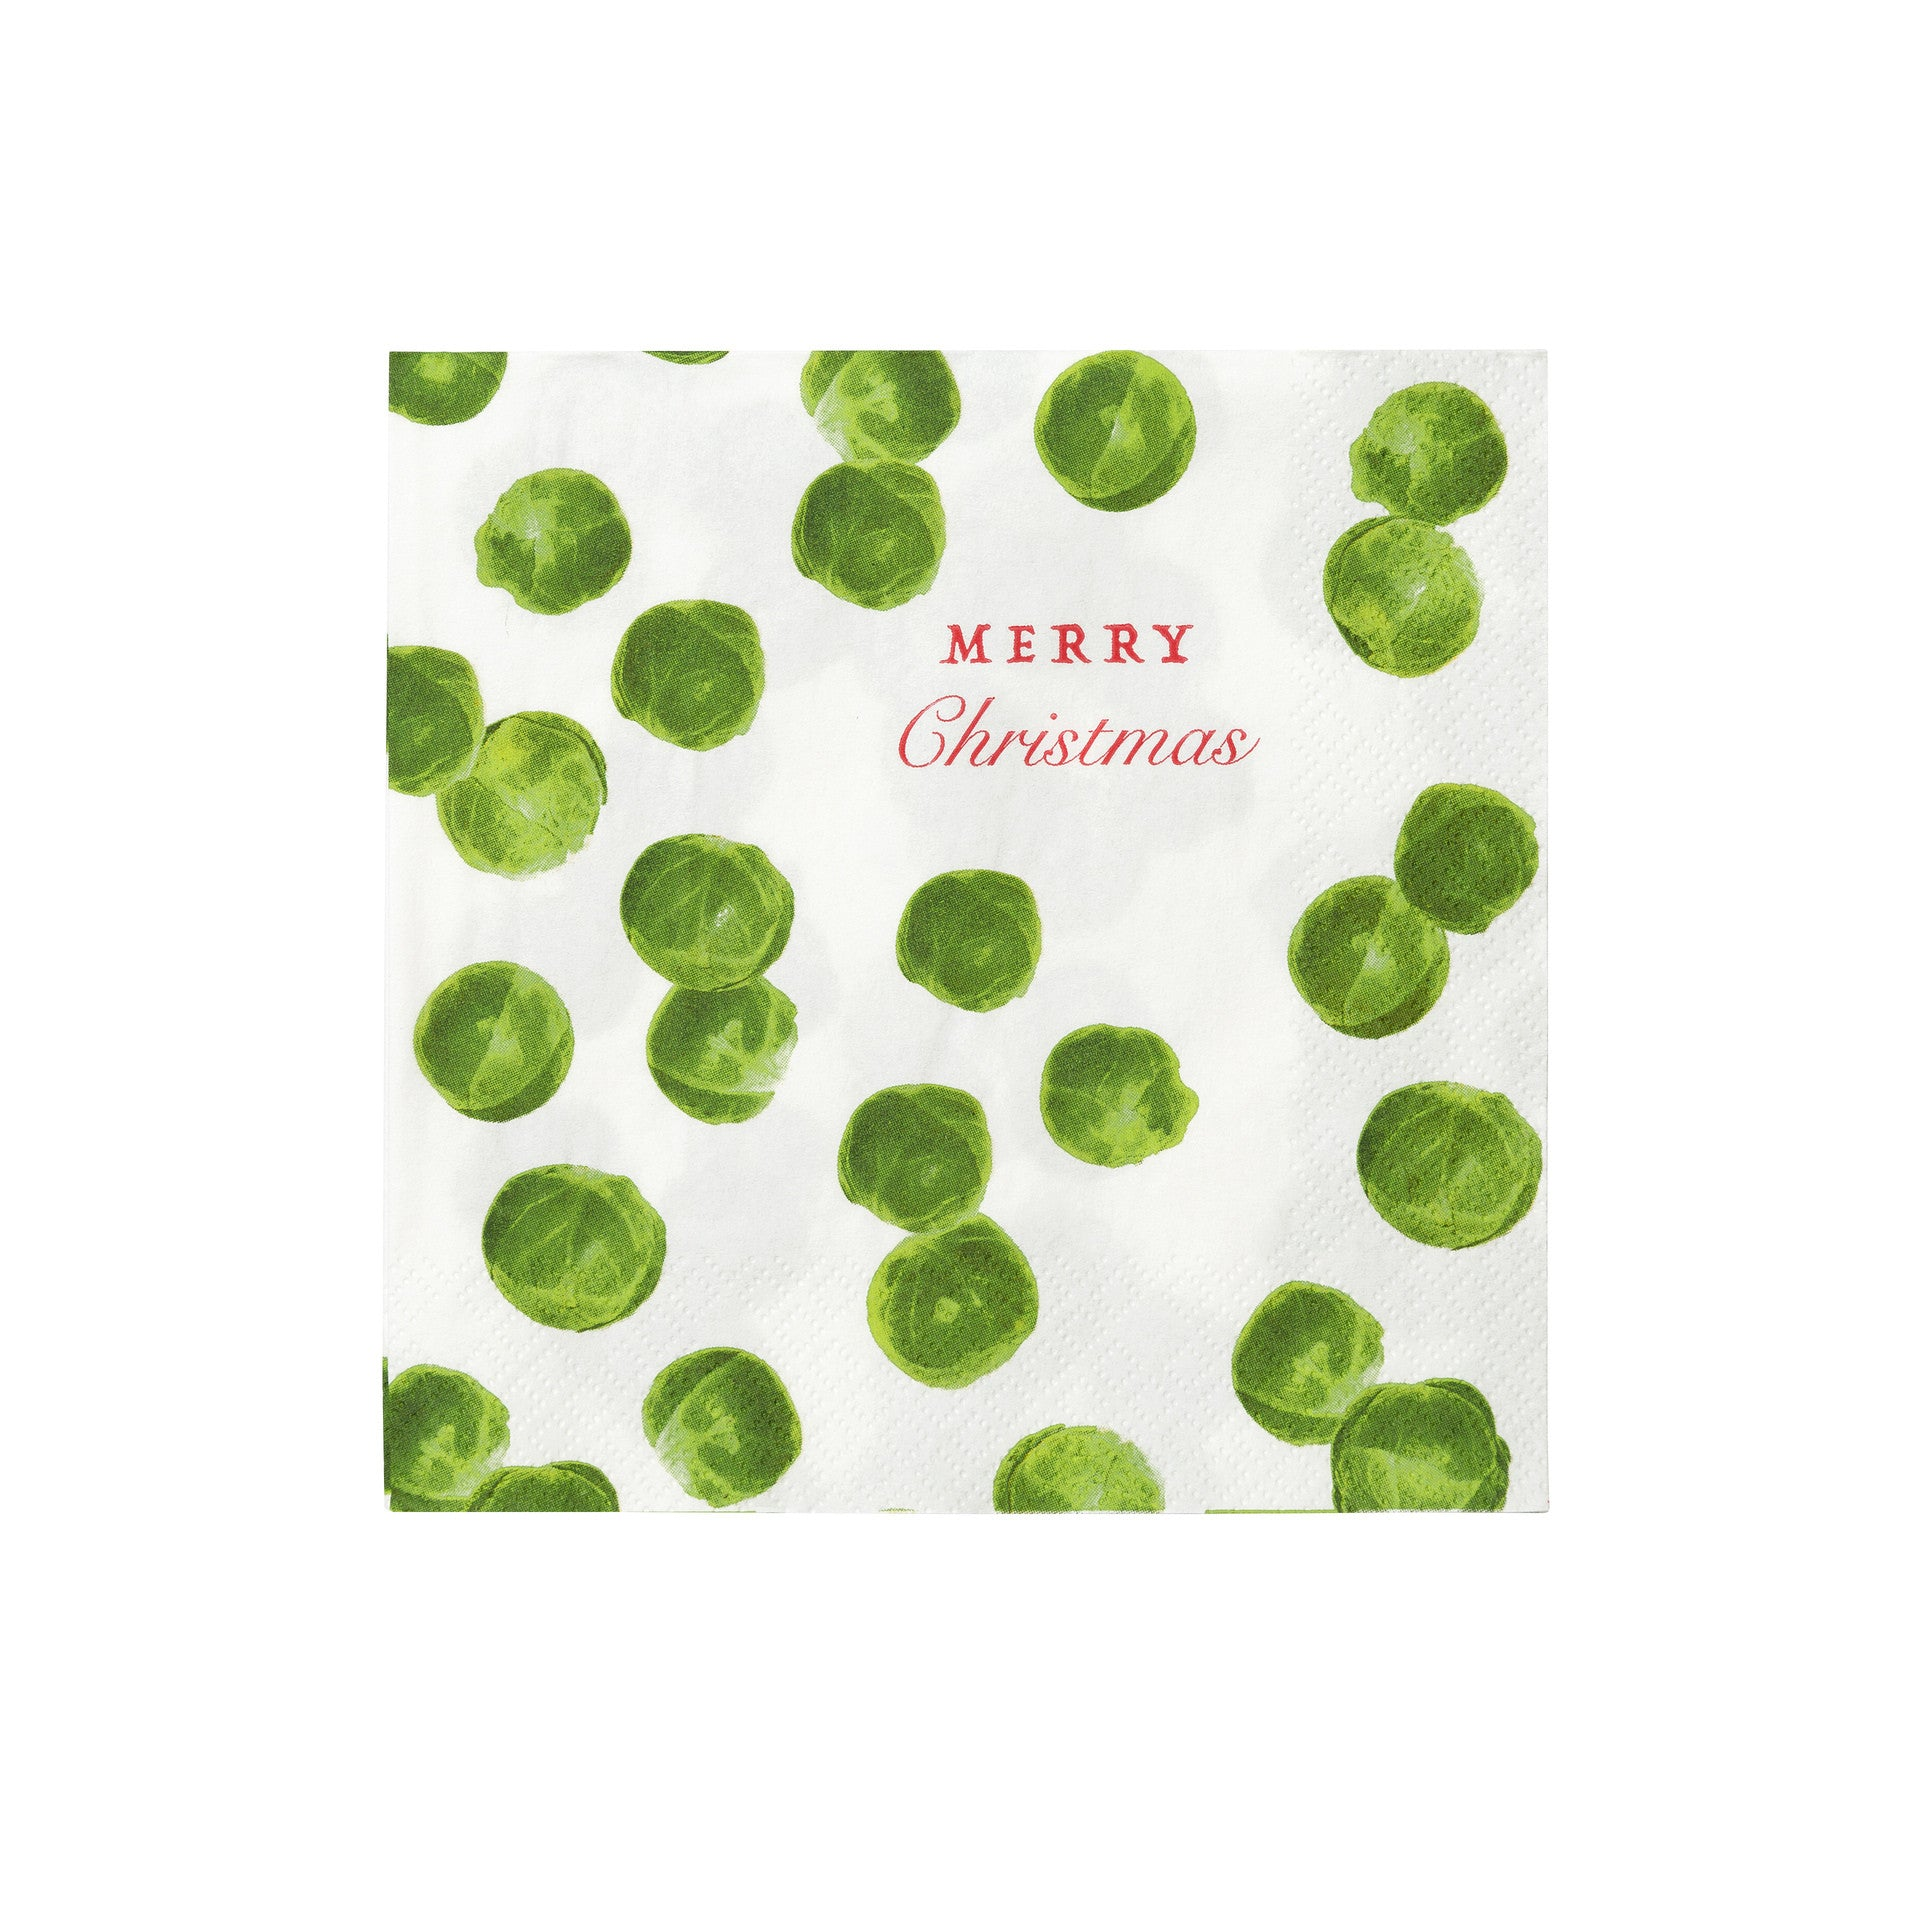 BOTANICAL CHRISTMAS SPROUT NAPKINS from Flingers Party World Bristol Harbourside who offer a huge range of fancy dress costumes and partyware items